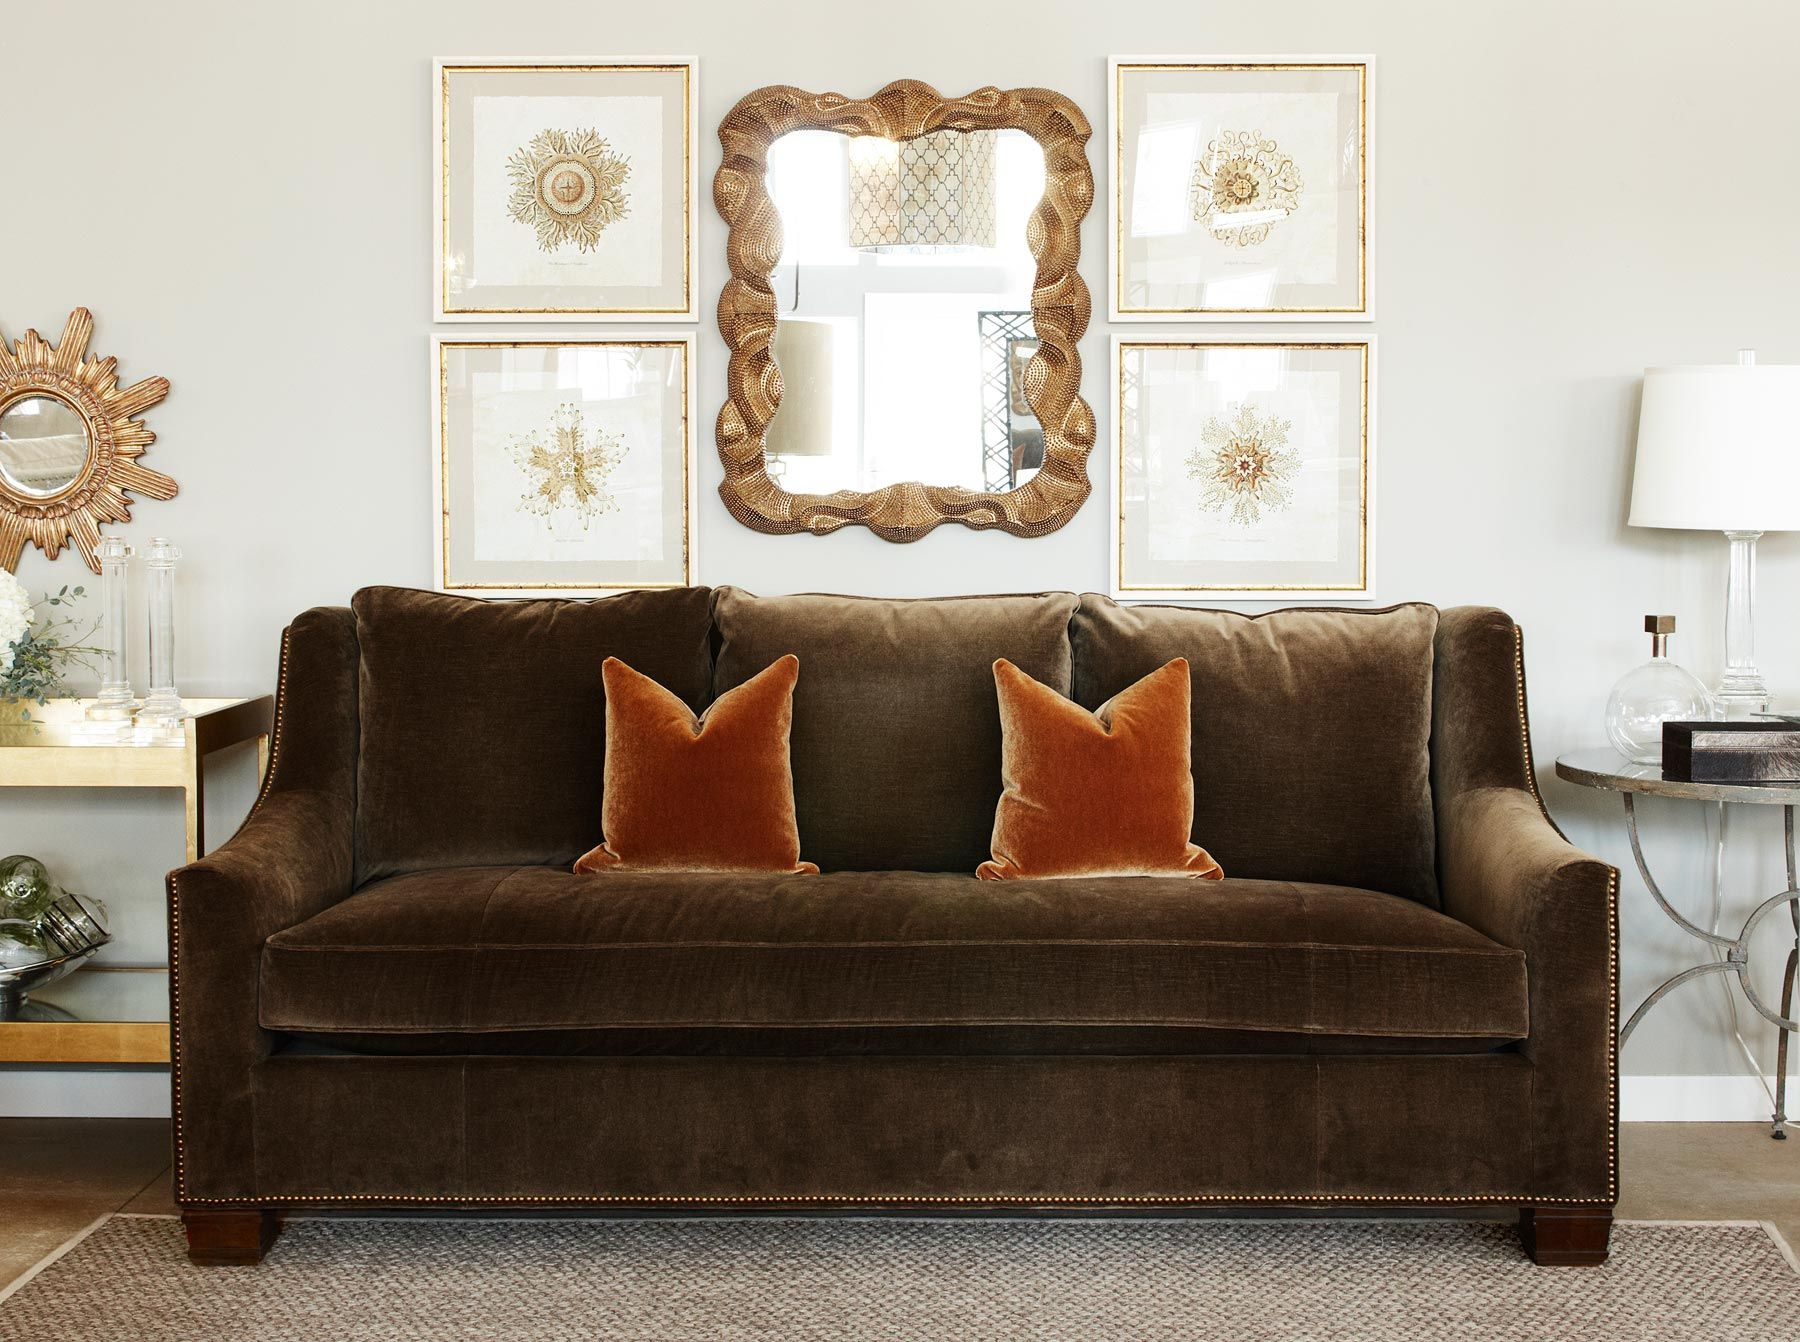 Hickory Chair sutton sofa Showroom Settings